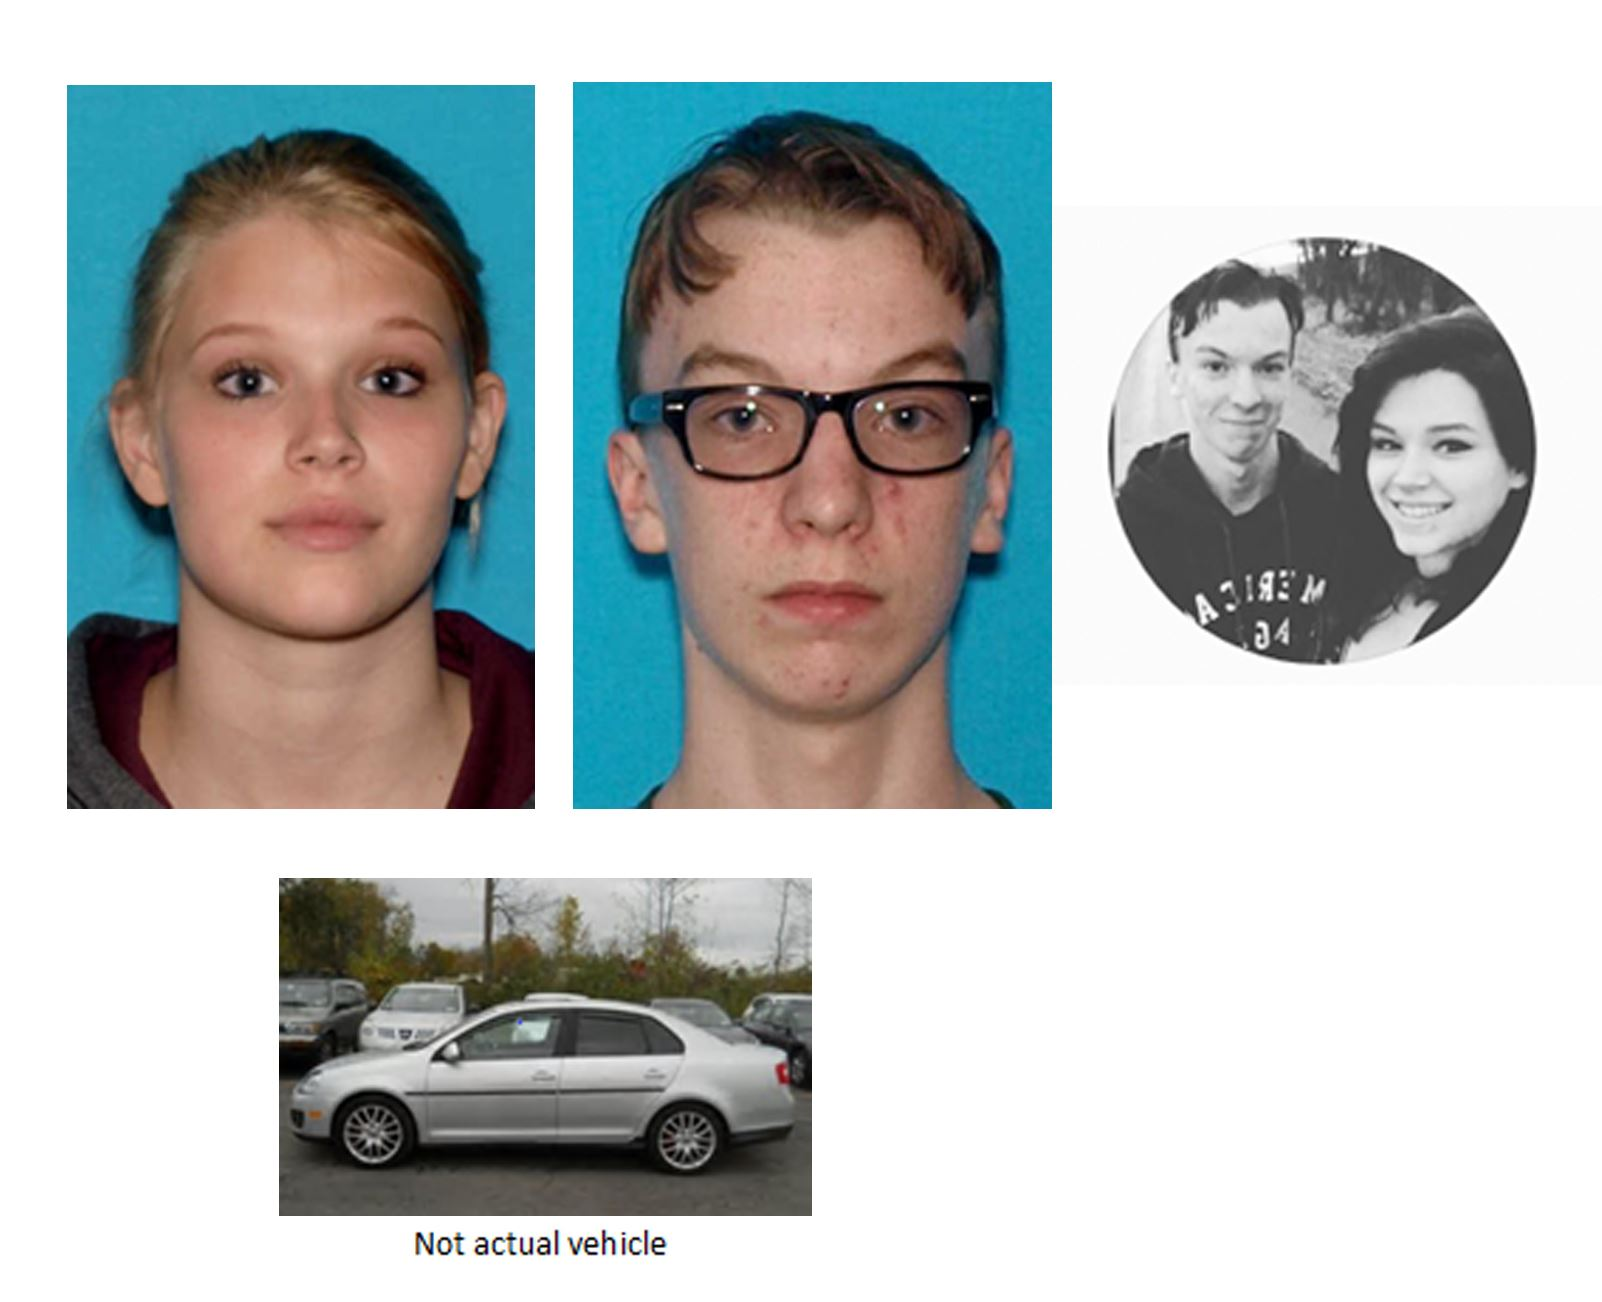 Missing Juveniles